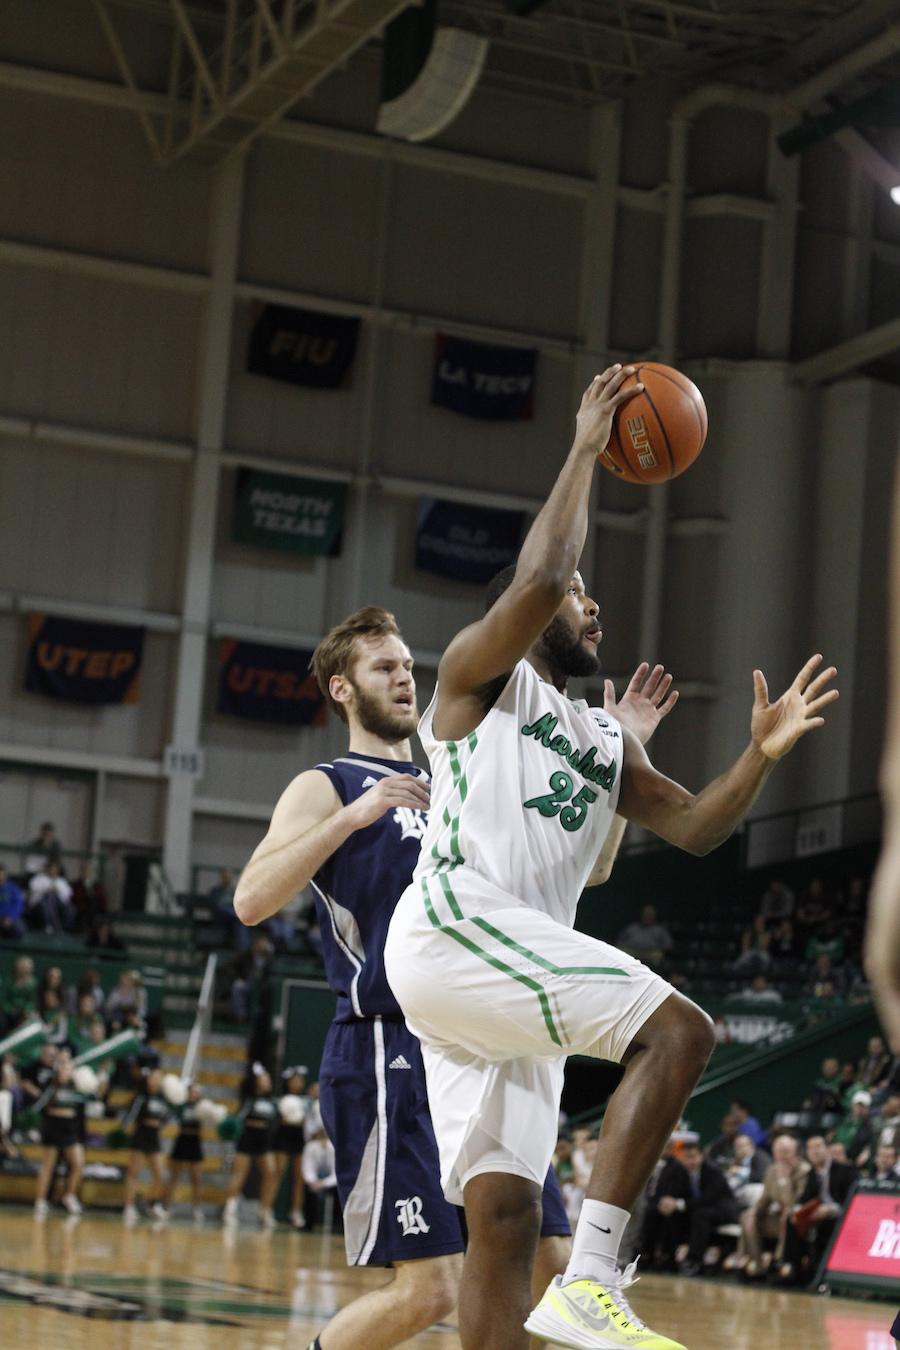 Marshall University men's basketball team takes on the Owls of Rice University Thursday in the Cam Henderson Center.